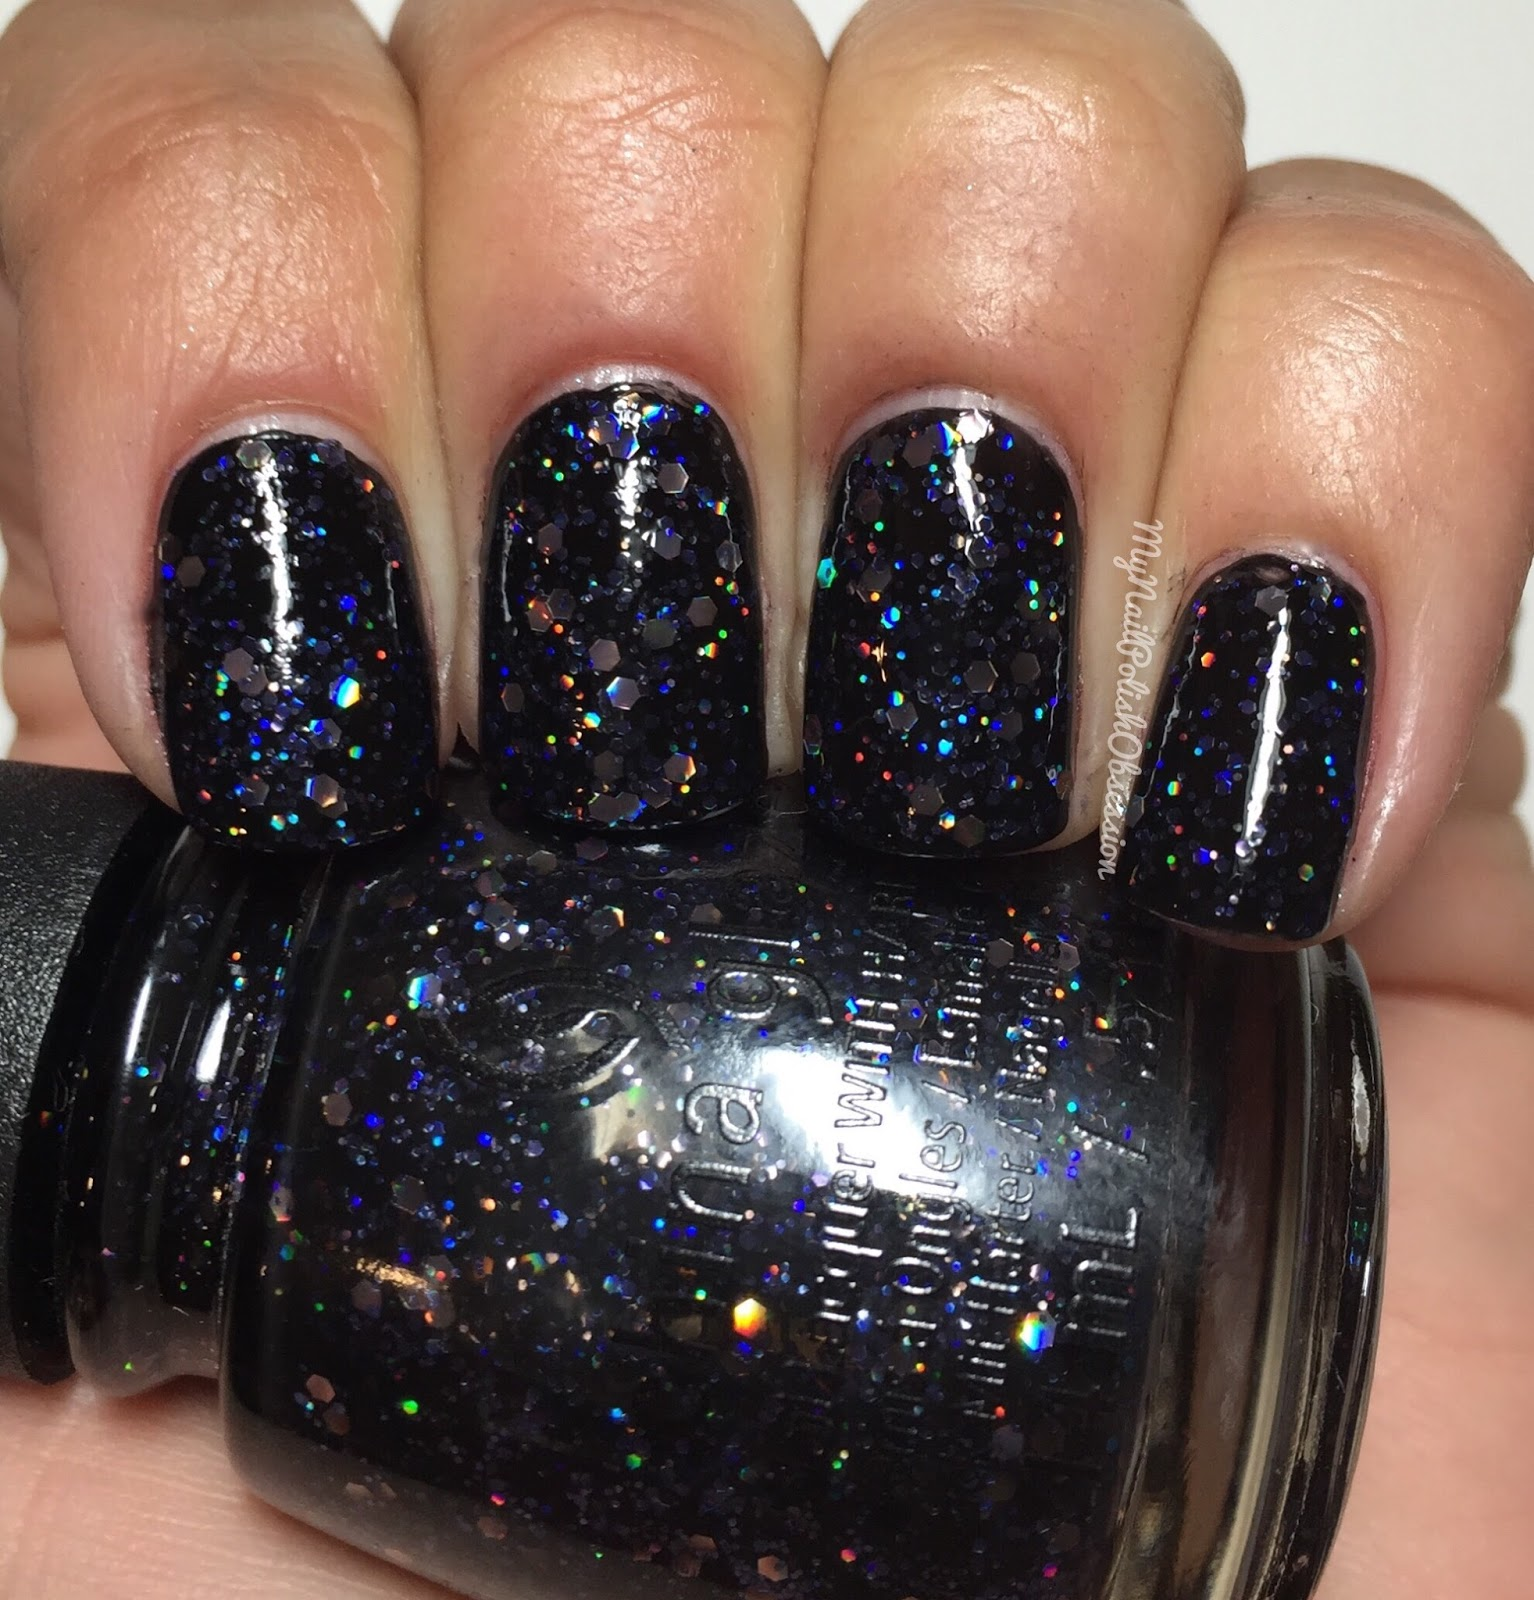 Clumpy Nail Polish: My Nail Polish Obsession: China Glaze Cheers Collection